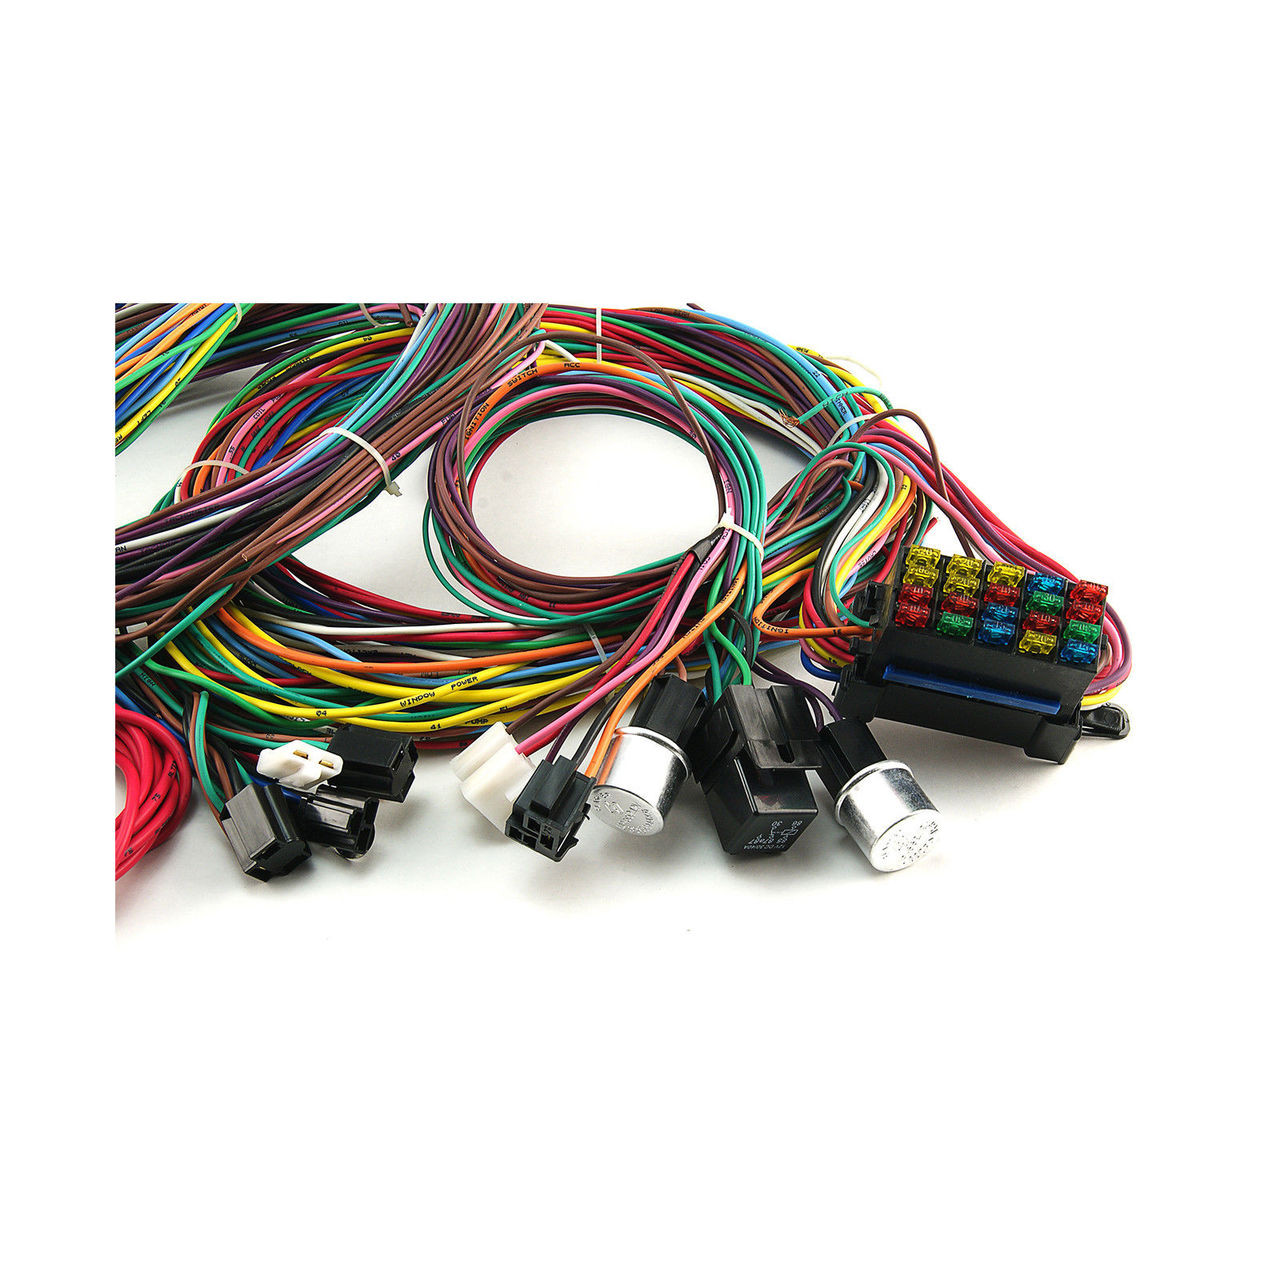 small resolution of tlg universal 20 circuit wiring harness kit suit hot rod race car price 299 00 image 1 larger more photos